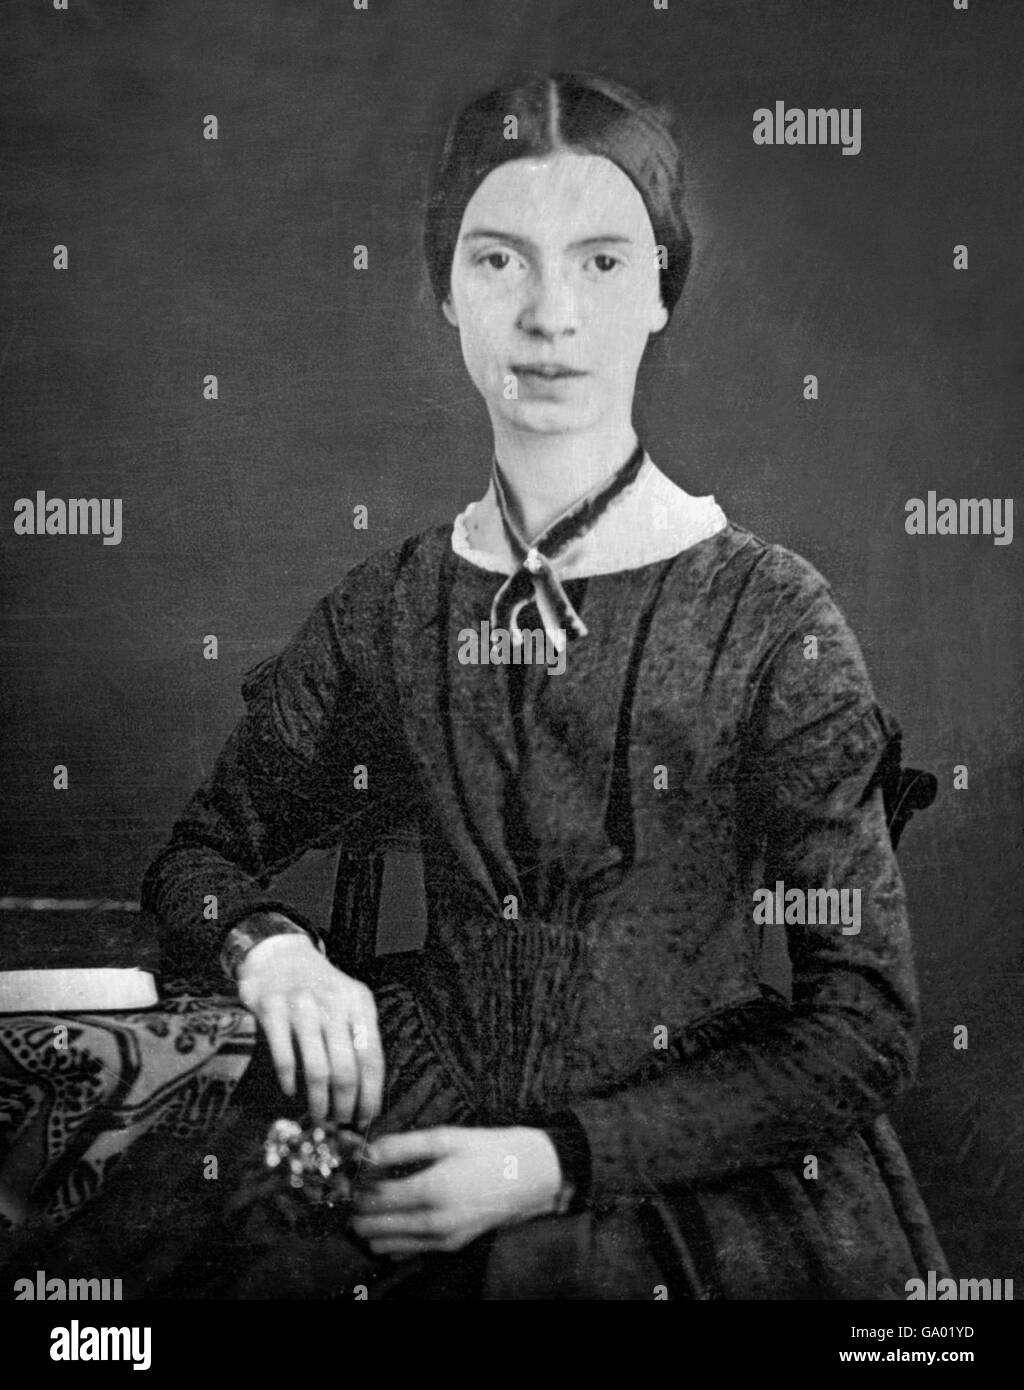 """a biography of emily dickinson an american poet Walt whitman and emily dickinson were both """"beginners""""   whitman and emily  dickinson as the start or """"beginn[ing]"""" of american poetry, and this idea   twentieth century—a history characterized by boundaries, divisions, and  deference to."""